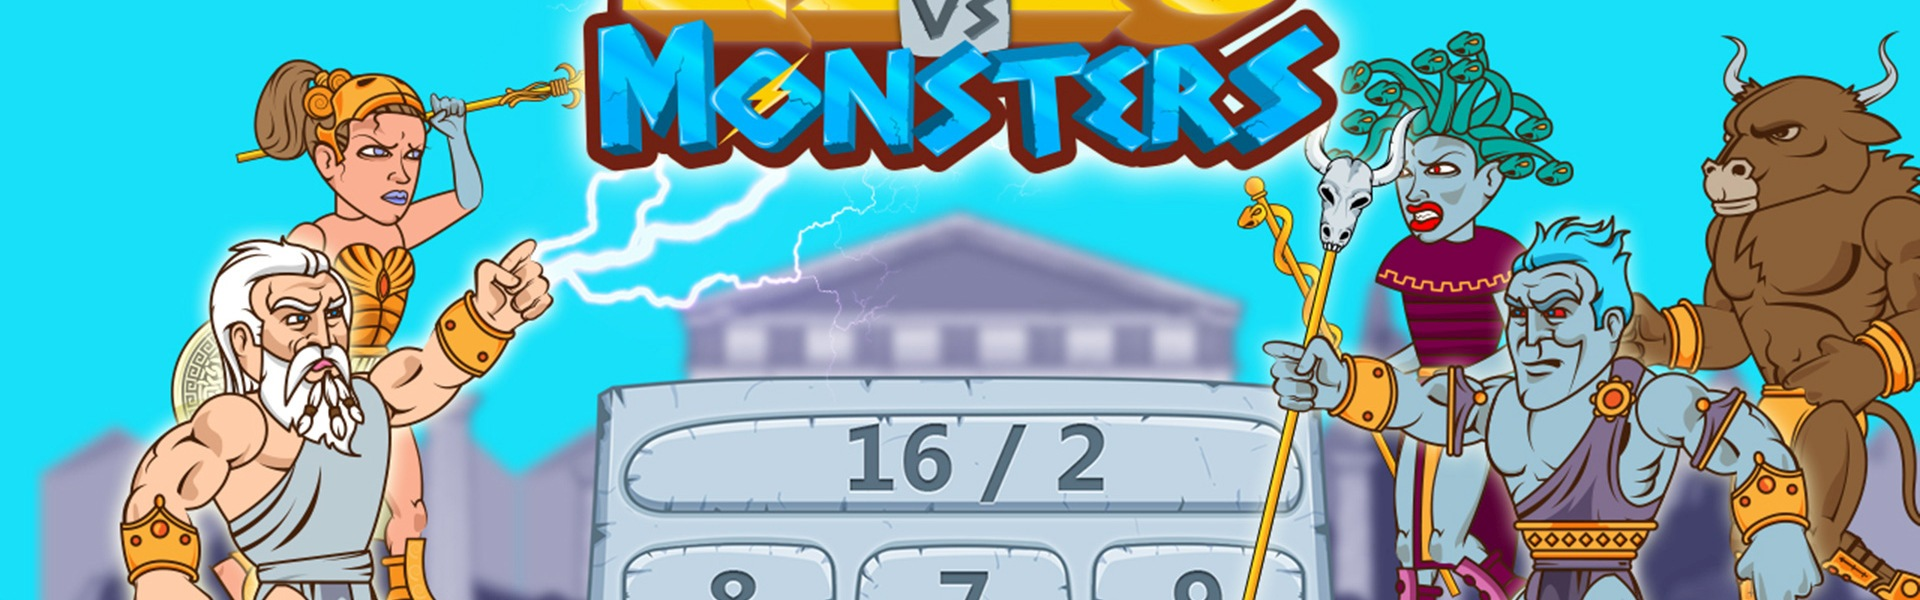 Zeus vs Monsters - Math Game for kids Steam Key GLOBAL